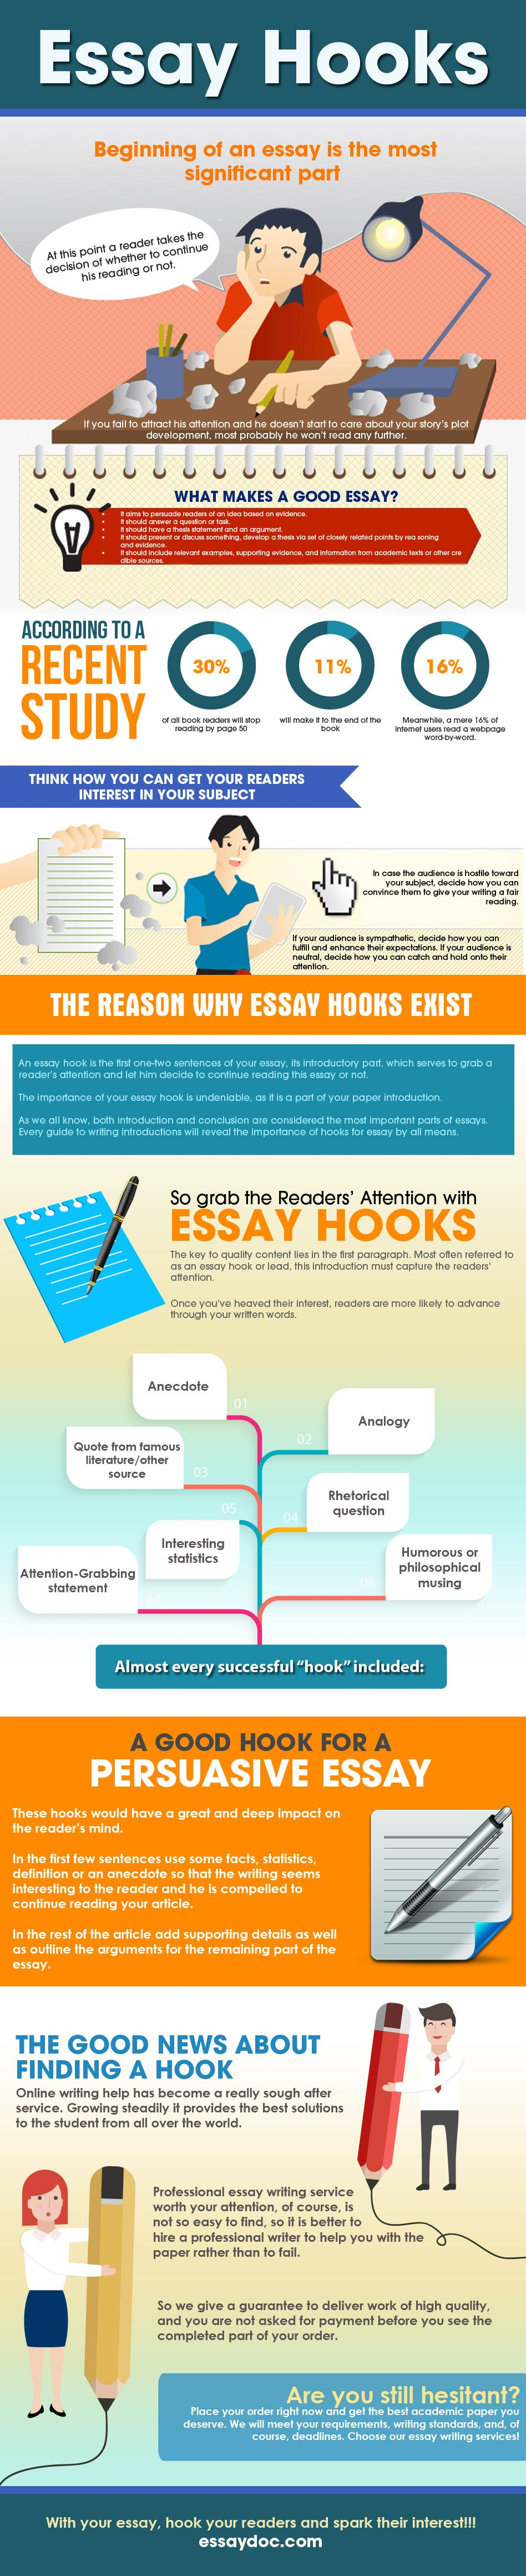 How to create a good essay hook